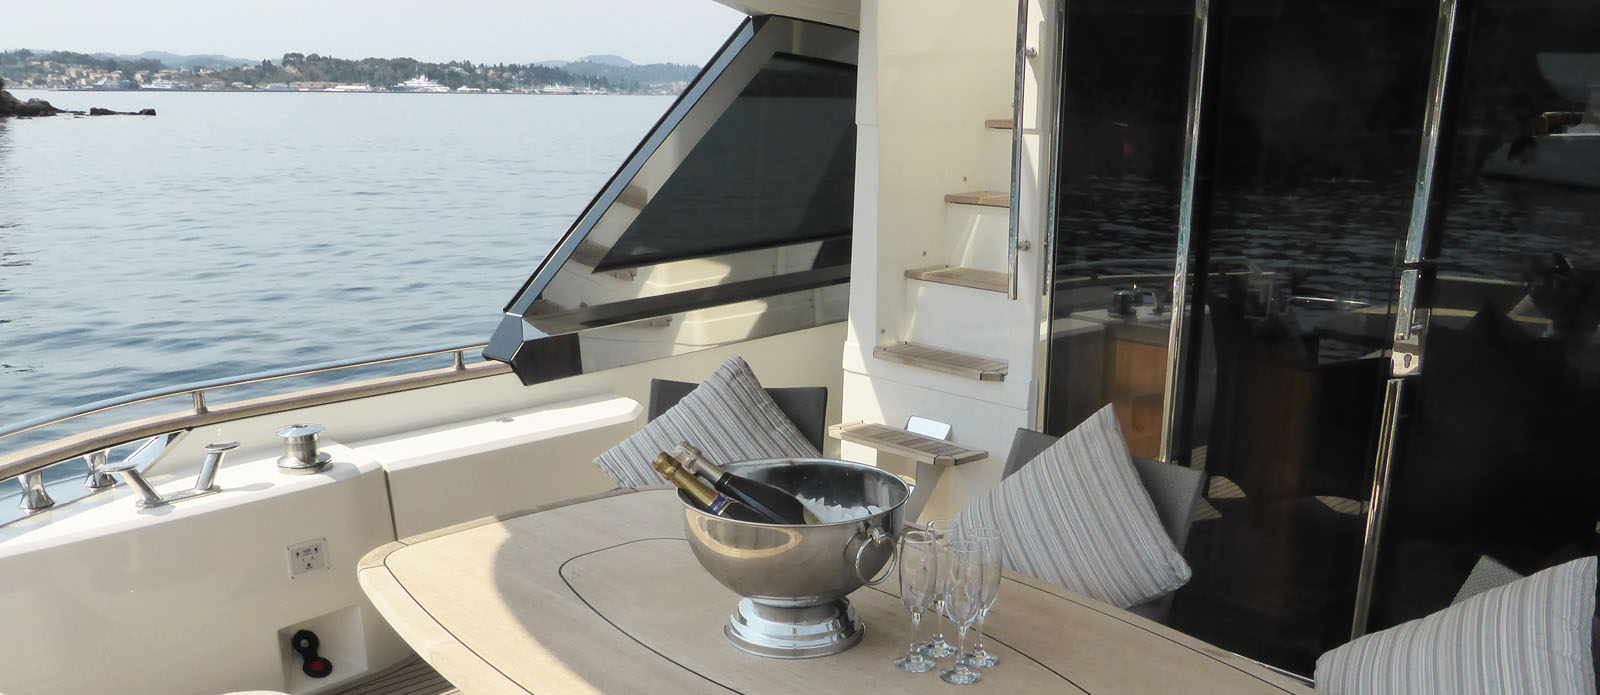 Monte-Carlo-Yachts-65-It's-Magic-Main-Deck